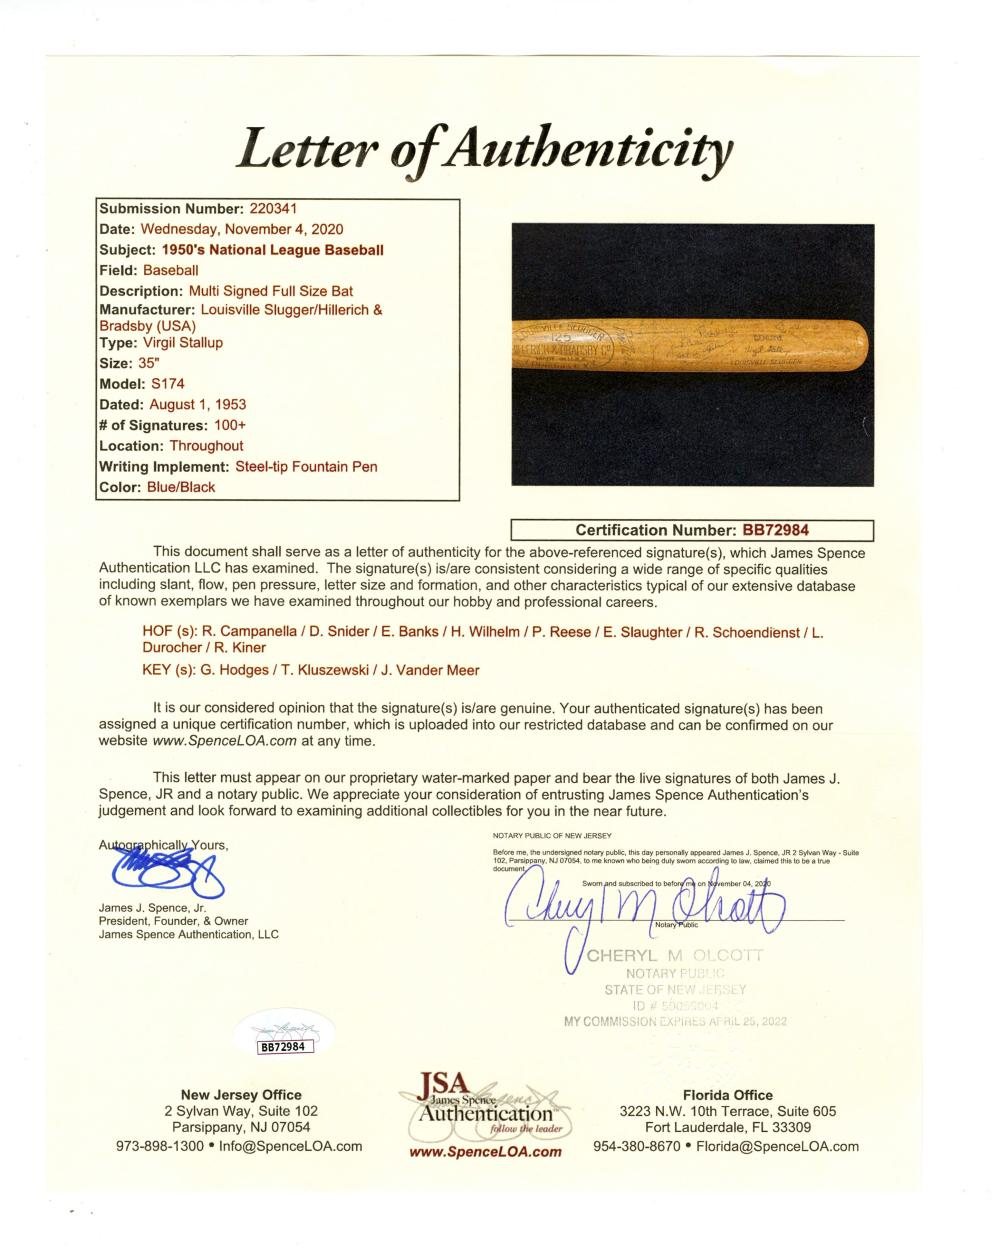 Superb All Star Bat with 100s of Signatures, Incl. Campanella, Snider, Banks, and Many More, JSA Certificate